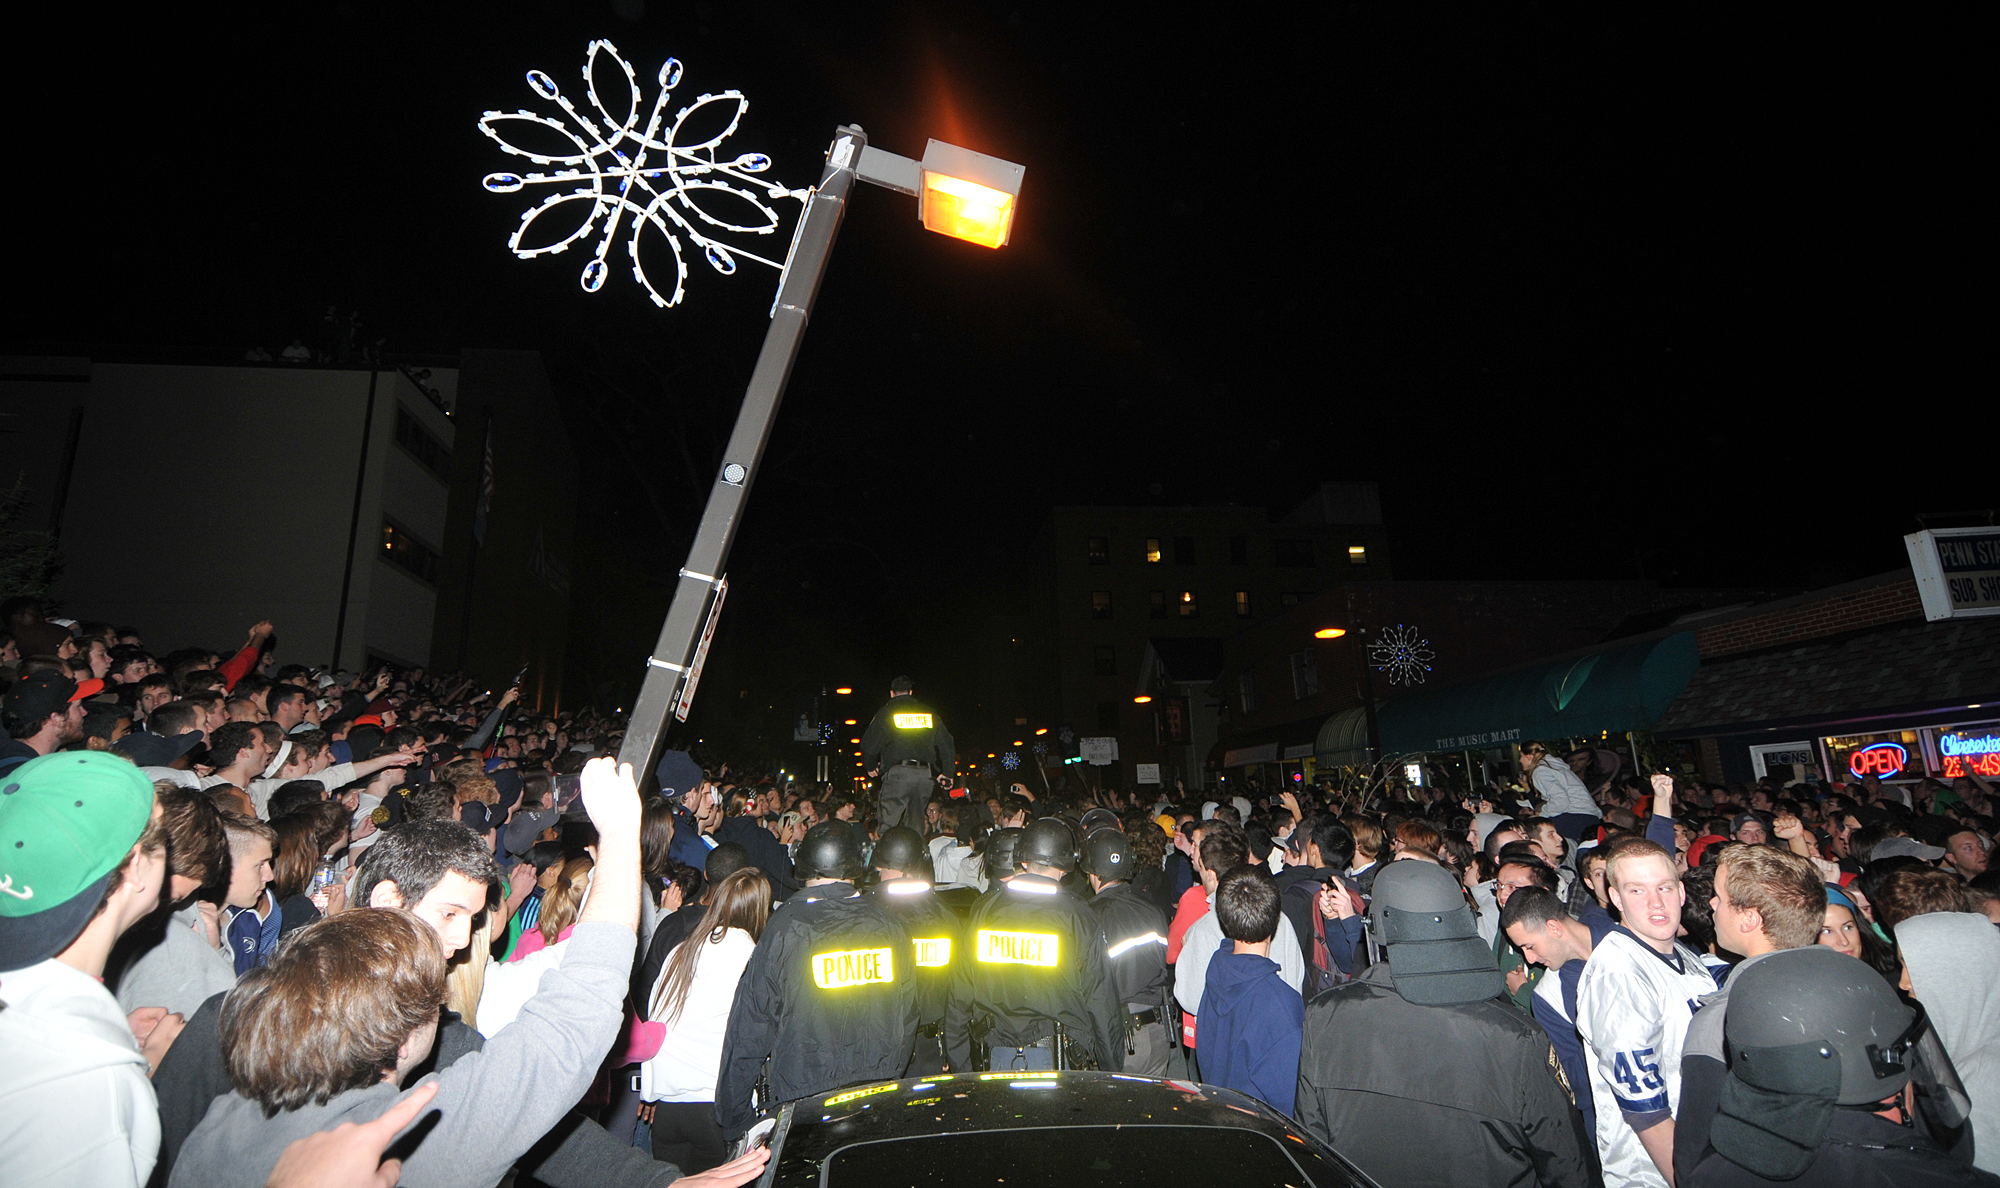 A policeman (center) walks on top of a car to use pepper spray on a rioter on Beaver Avenue during the riots on Wednesday night. The lightpole was also being torn down by rioters.